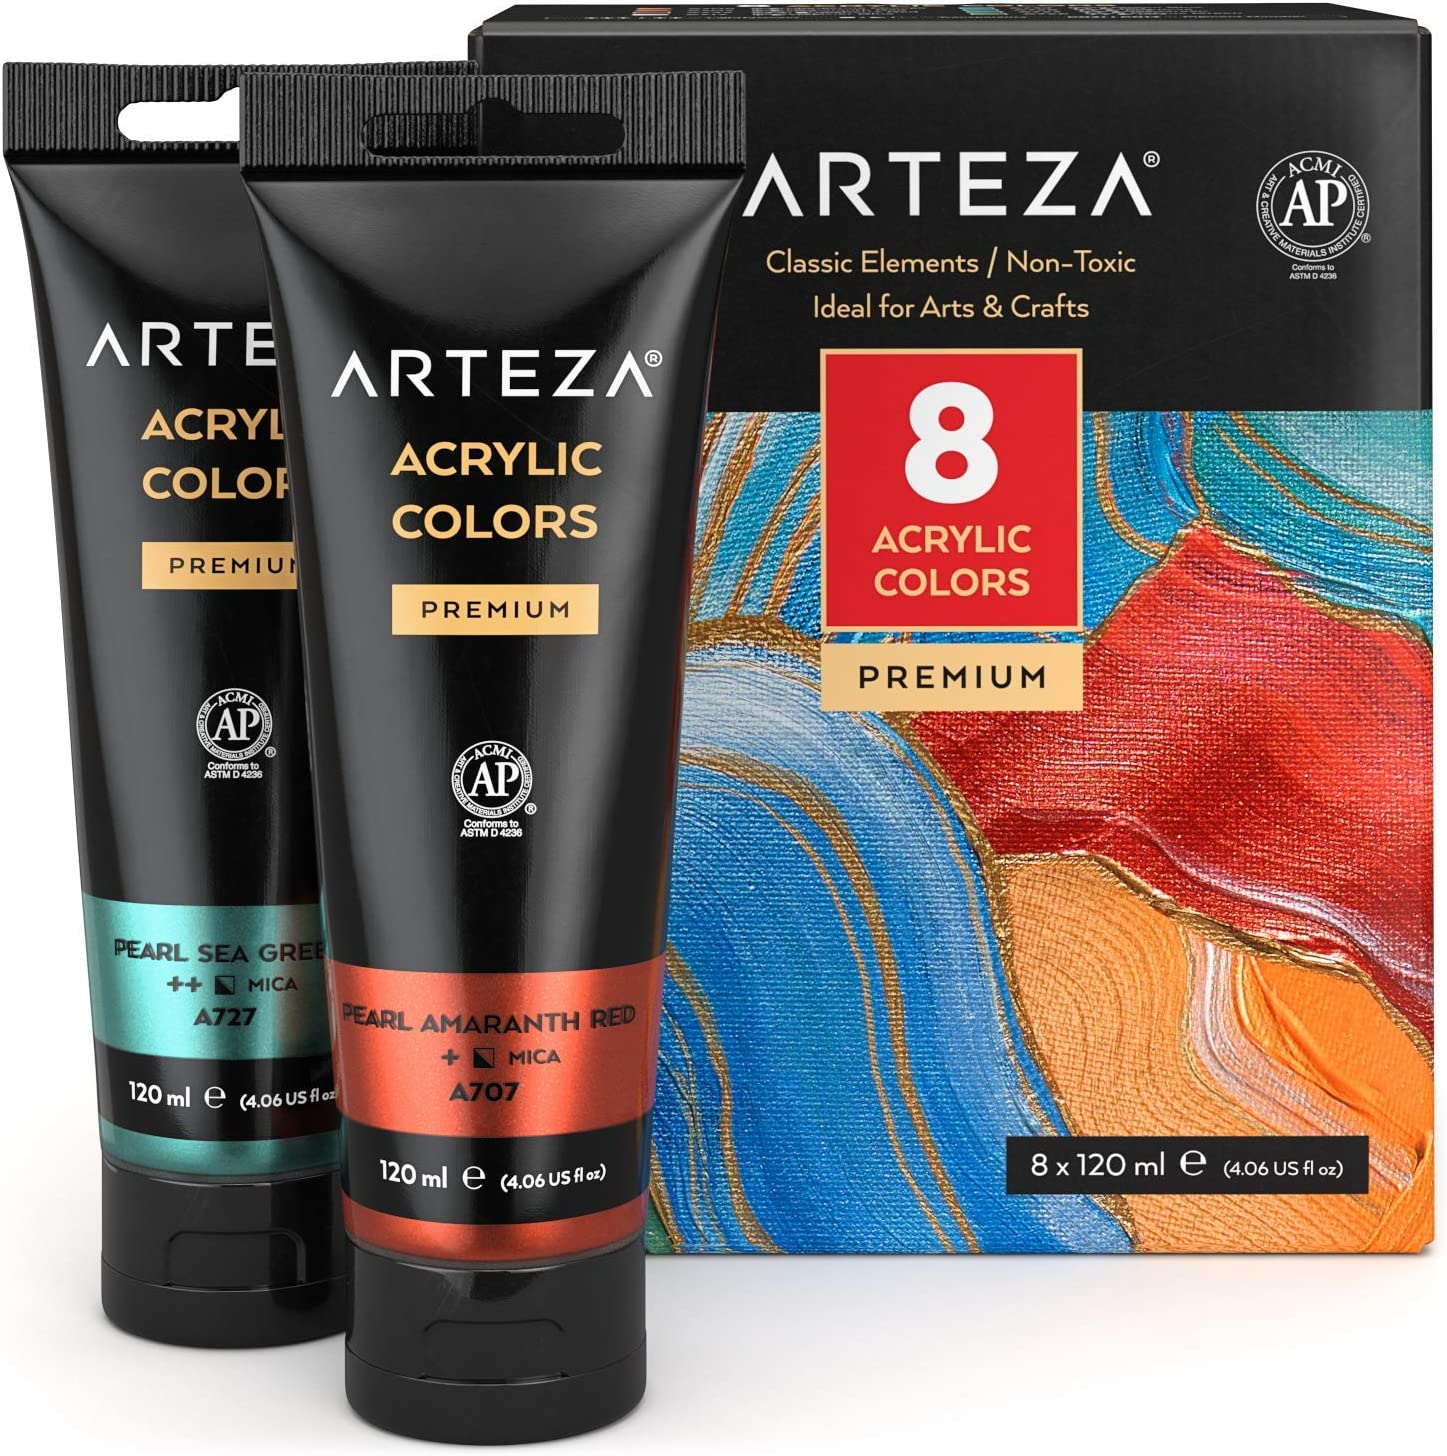 Arteza Metallic Acrylic Paint, Set of 8 Classic Elements Colors in 4.06oz Tubes, Rich Pigments, Non Fading, Non Toxic Paints for Artists, Hobby Painters & Kids, Ideal for Canvas Painting & Crafts